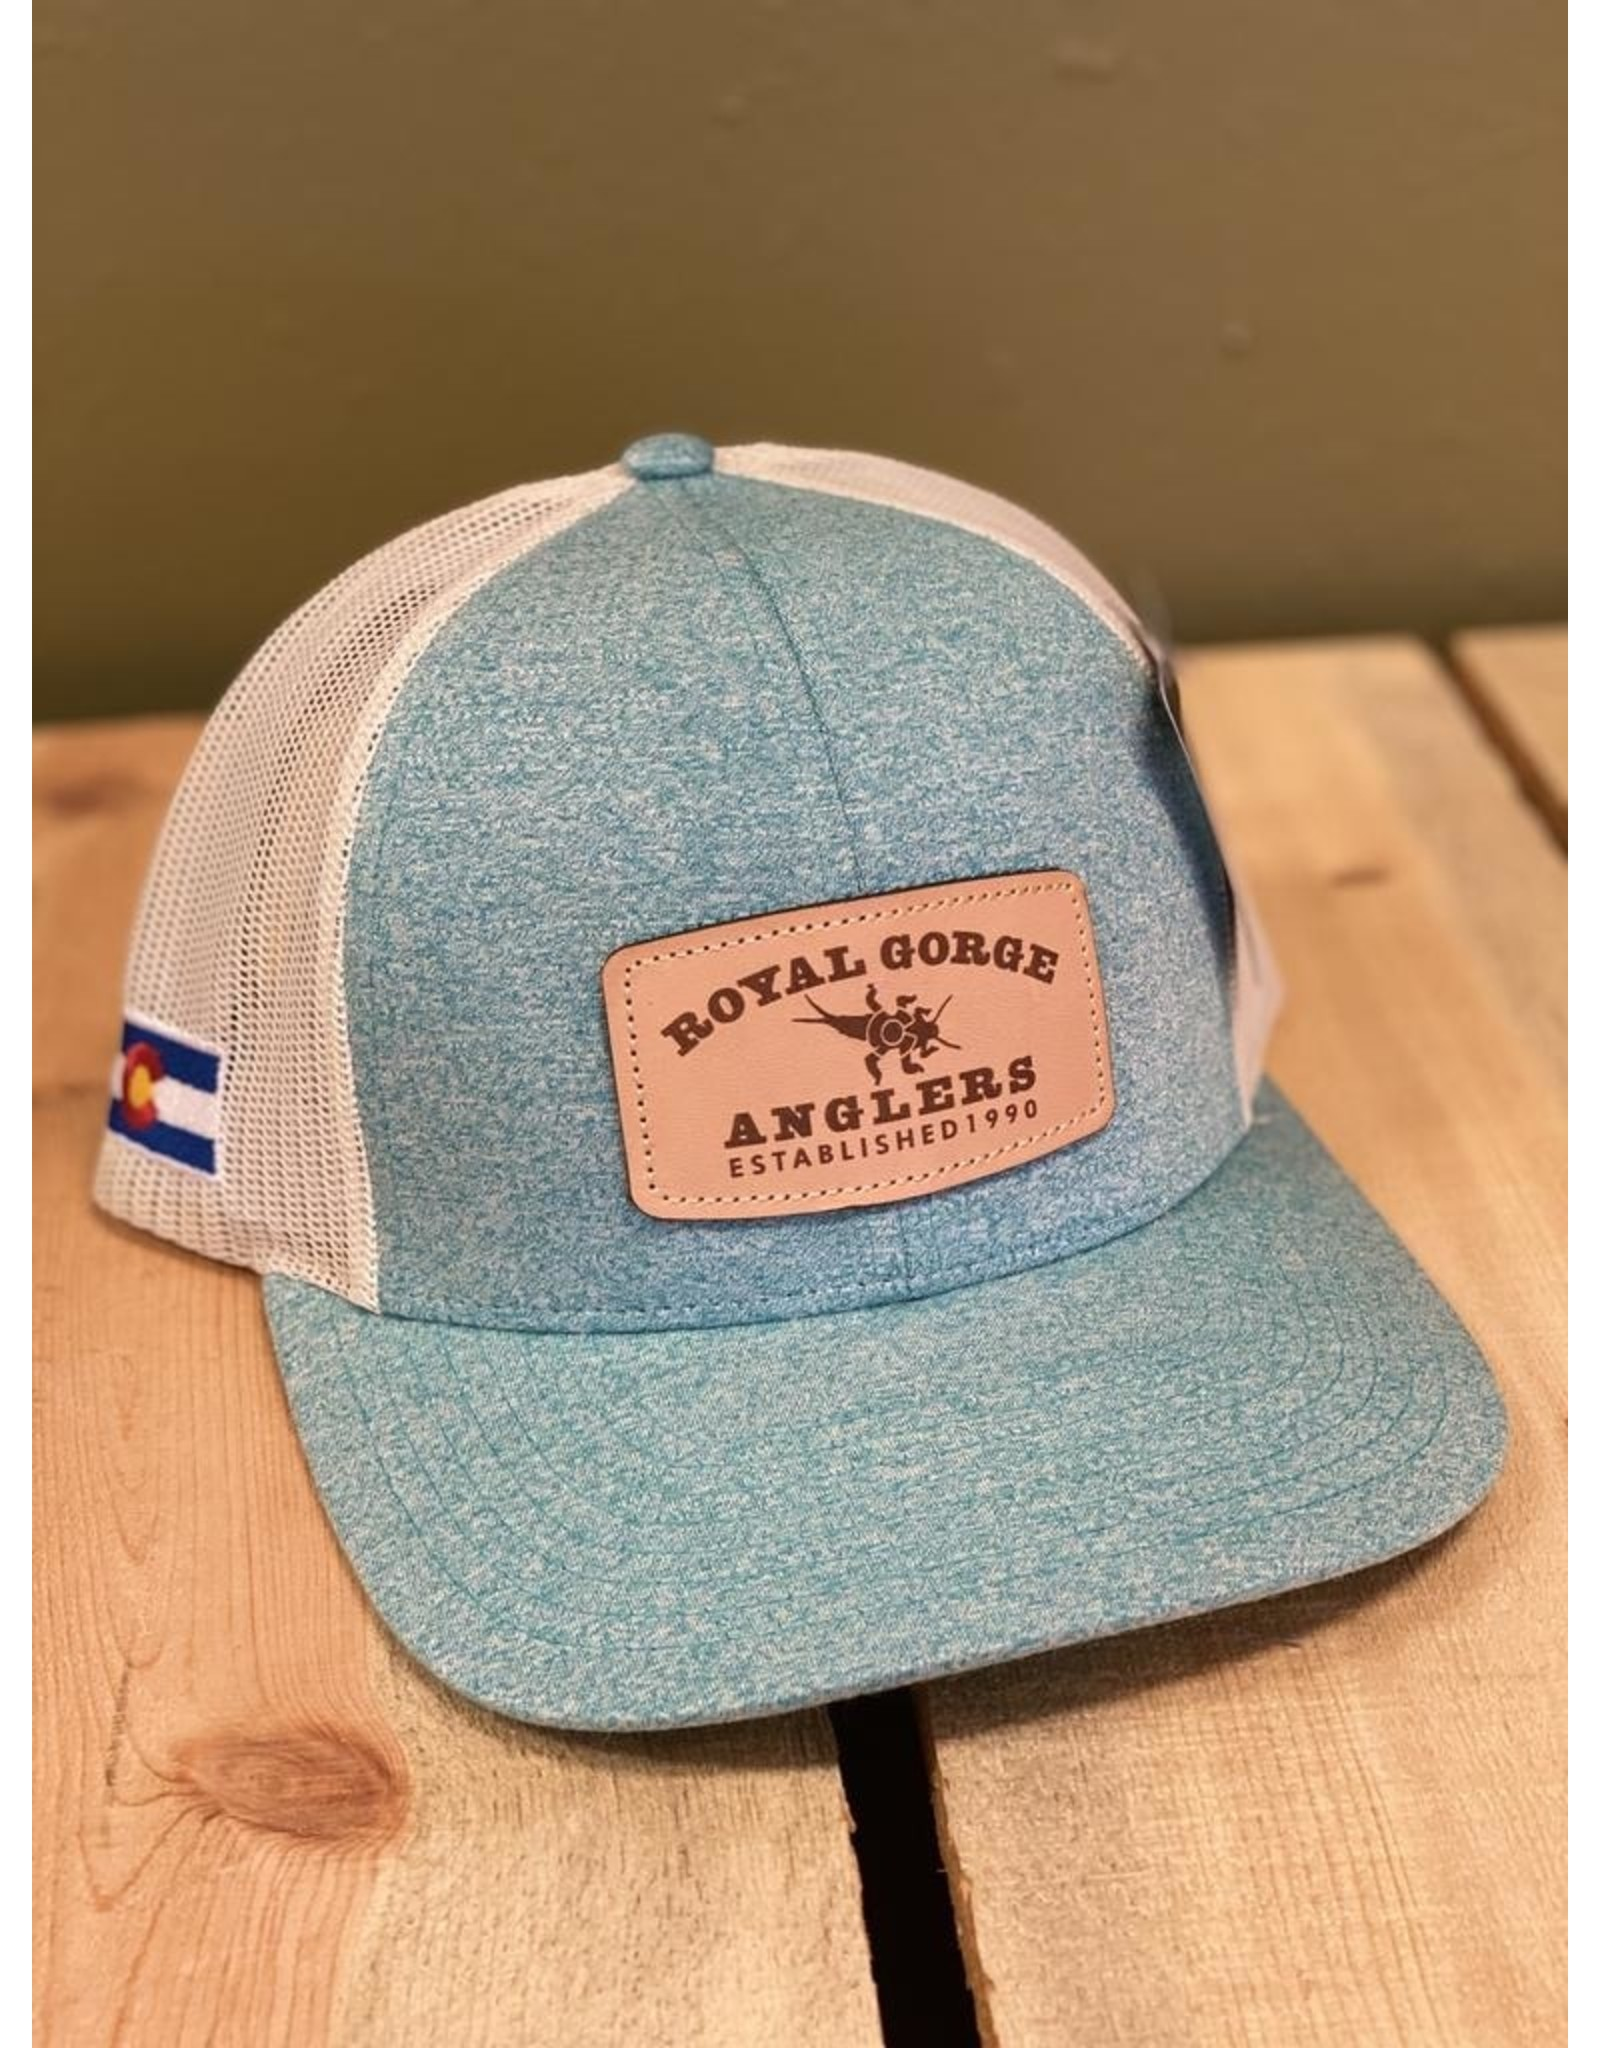 Richardson Stonebug Leather Patch Trucker (Green Teal/ Birch) *Small Fit